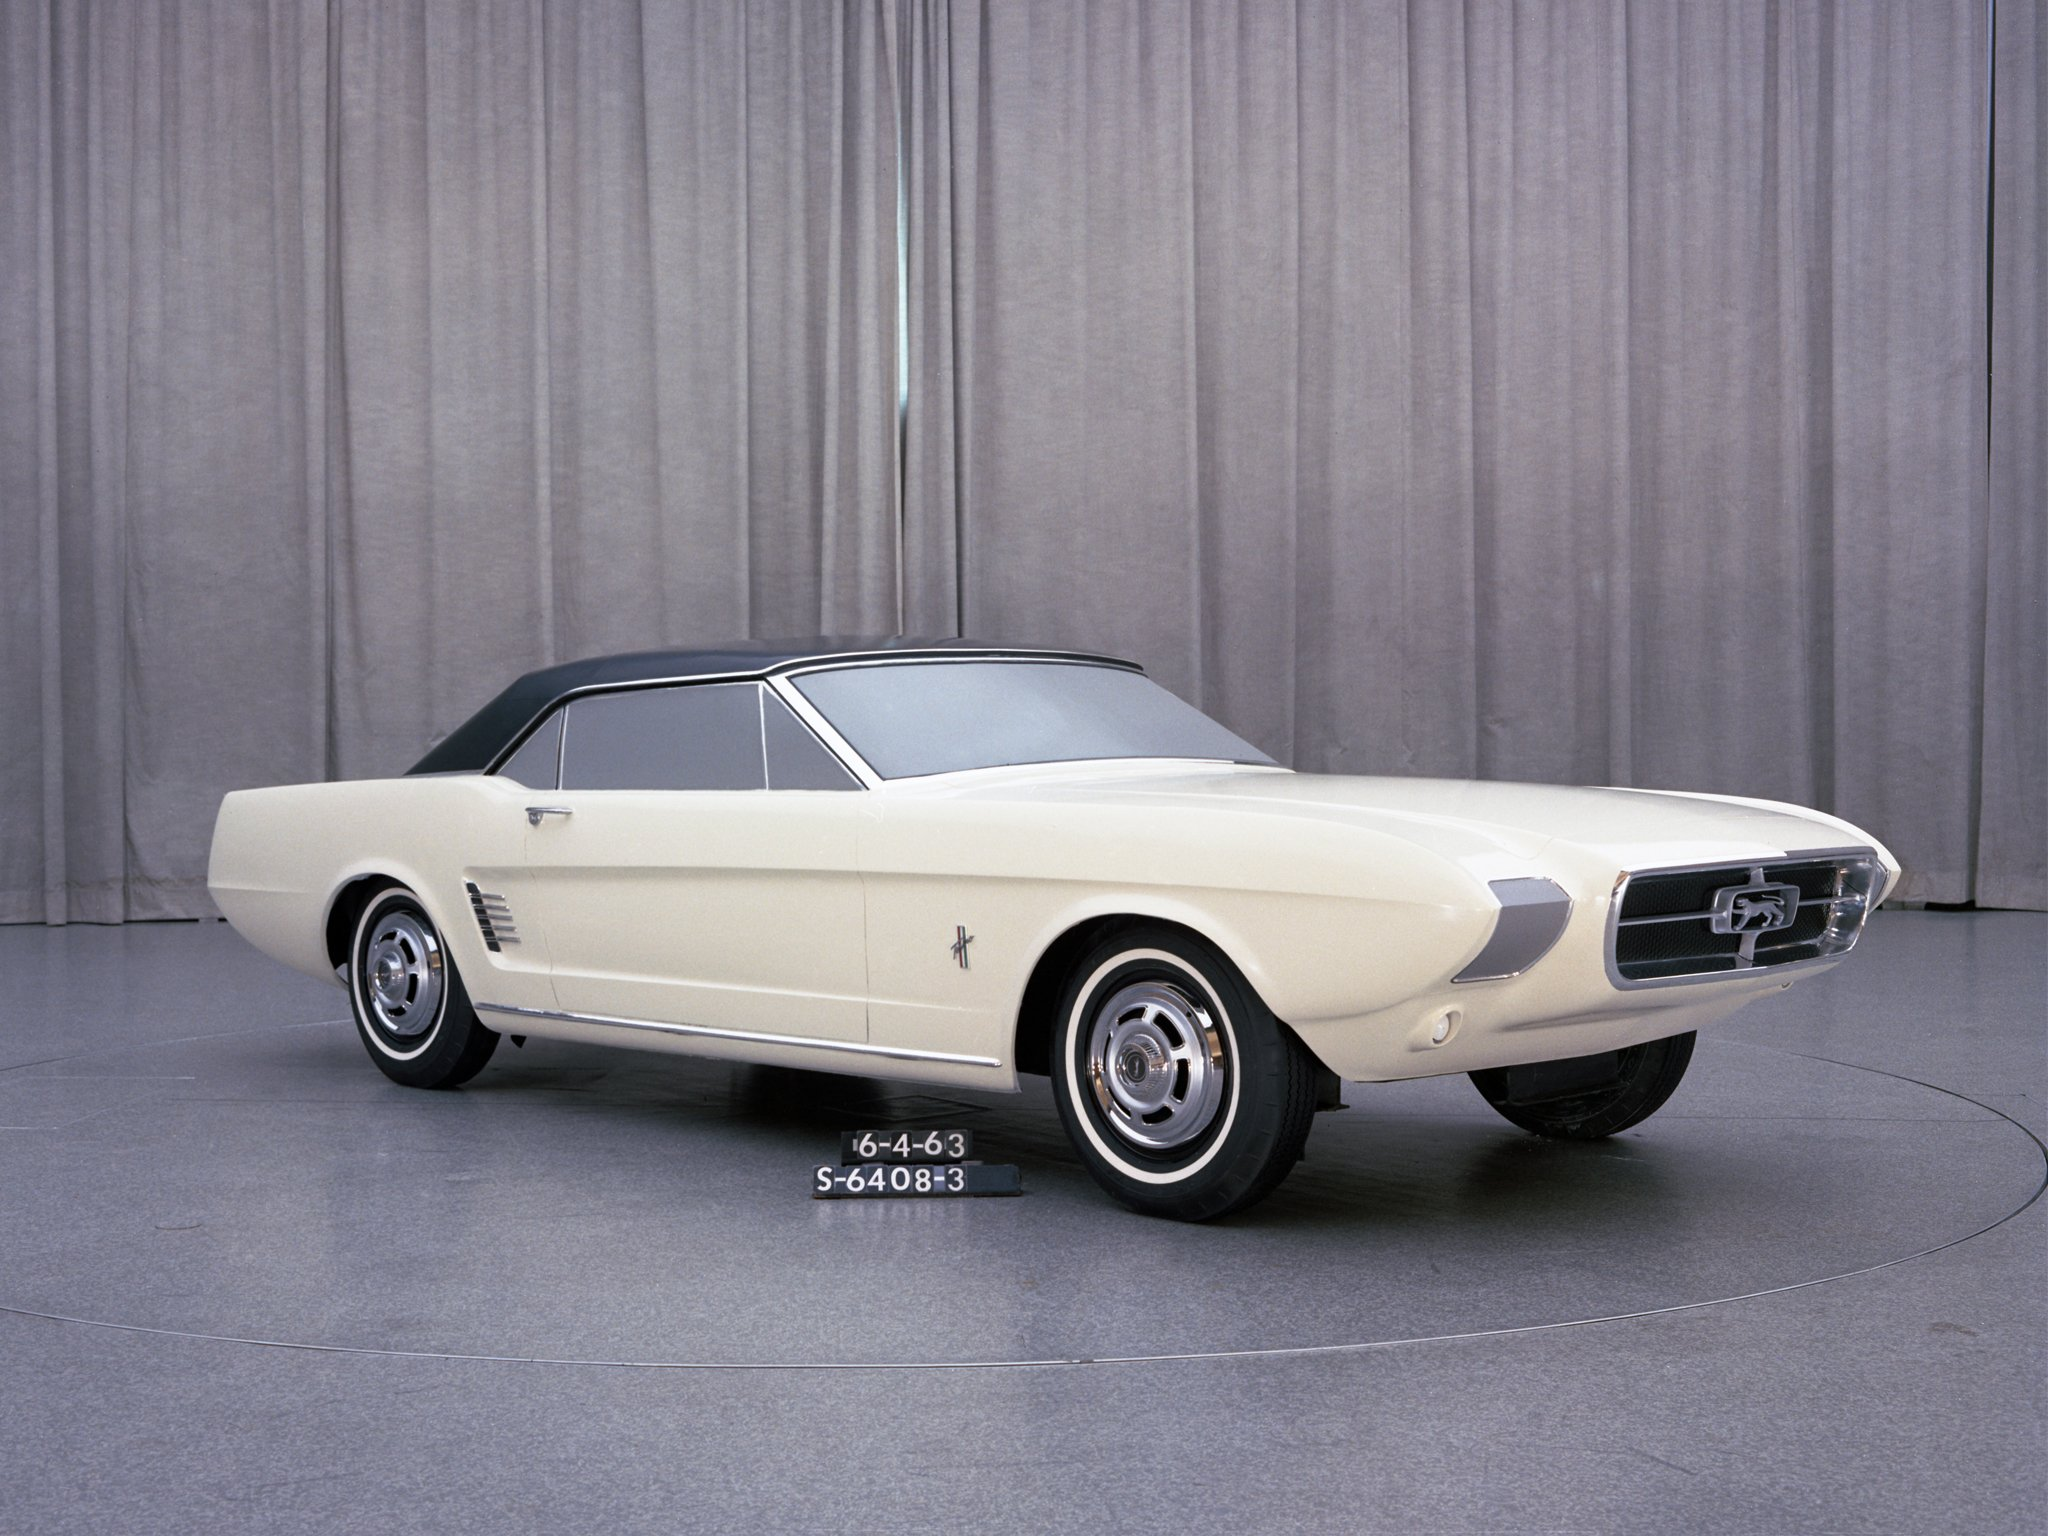 1963 ford mustang concept i i proposal muscle classic g wallpaper 2048x1536 305272 wallpaperup